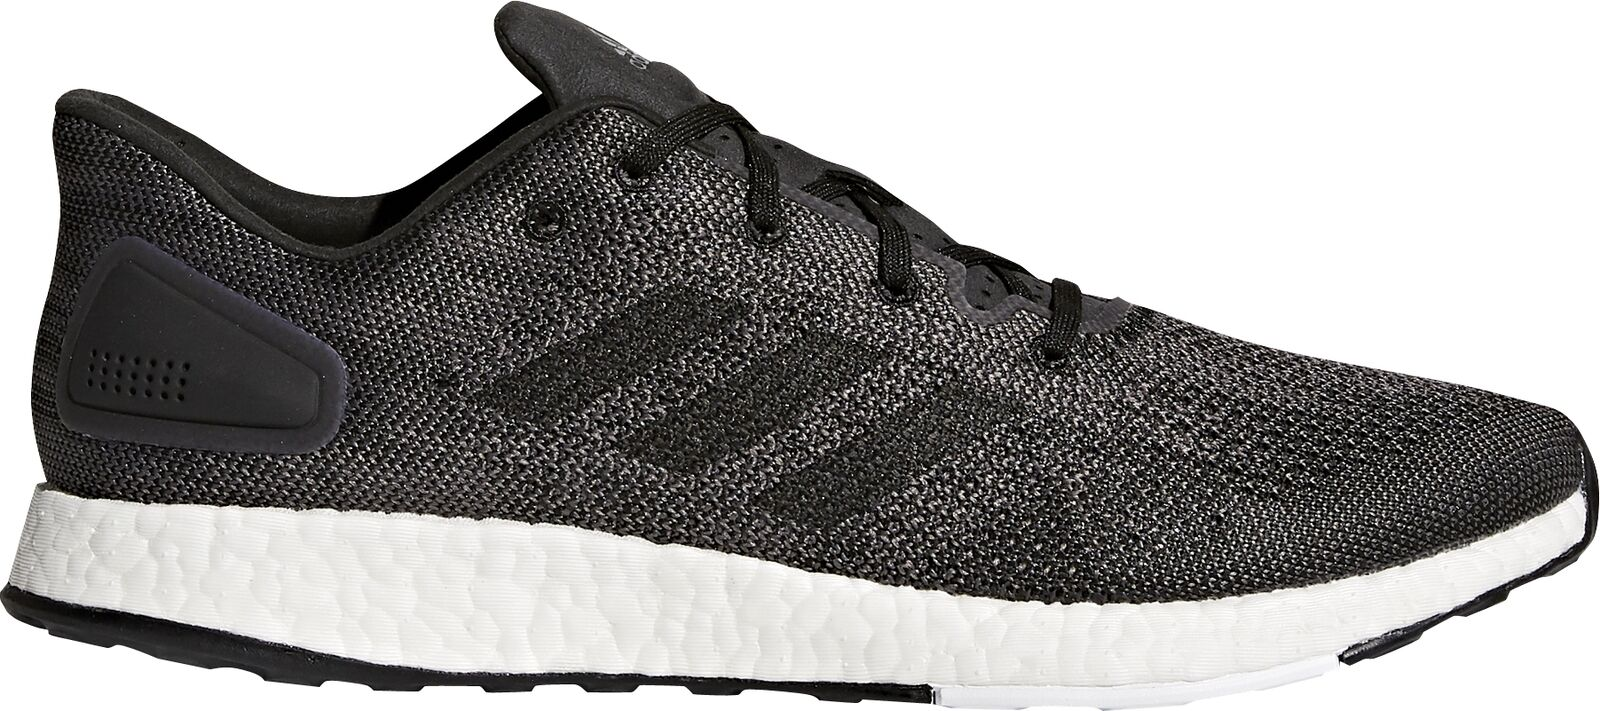 Adidas Pure BOOST DPR Mens Running shoes - Grey